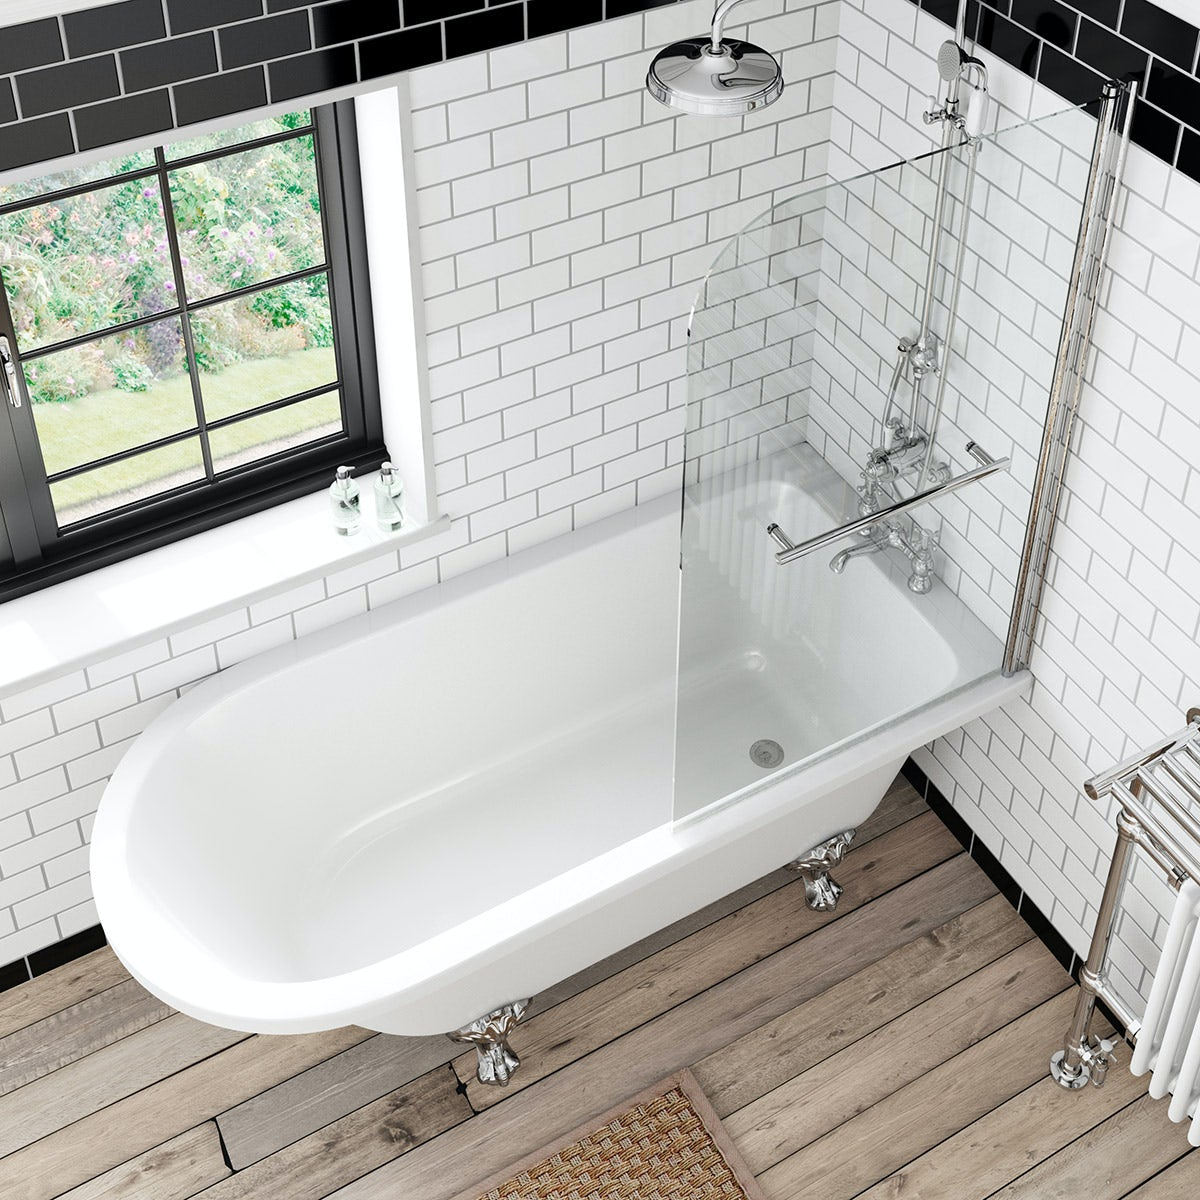 shower screens for freestanding baths mobroi com the bath co dulwich freestanding shower bath and bath screen with